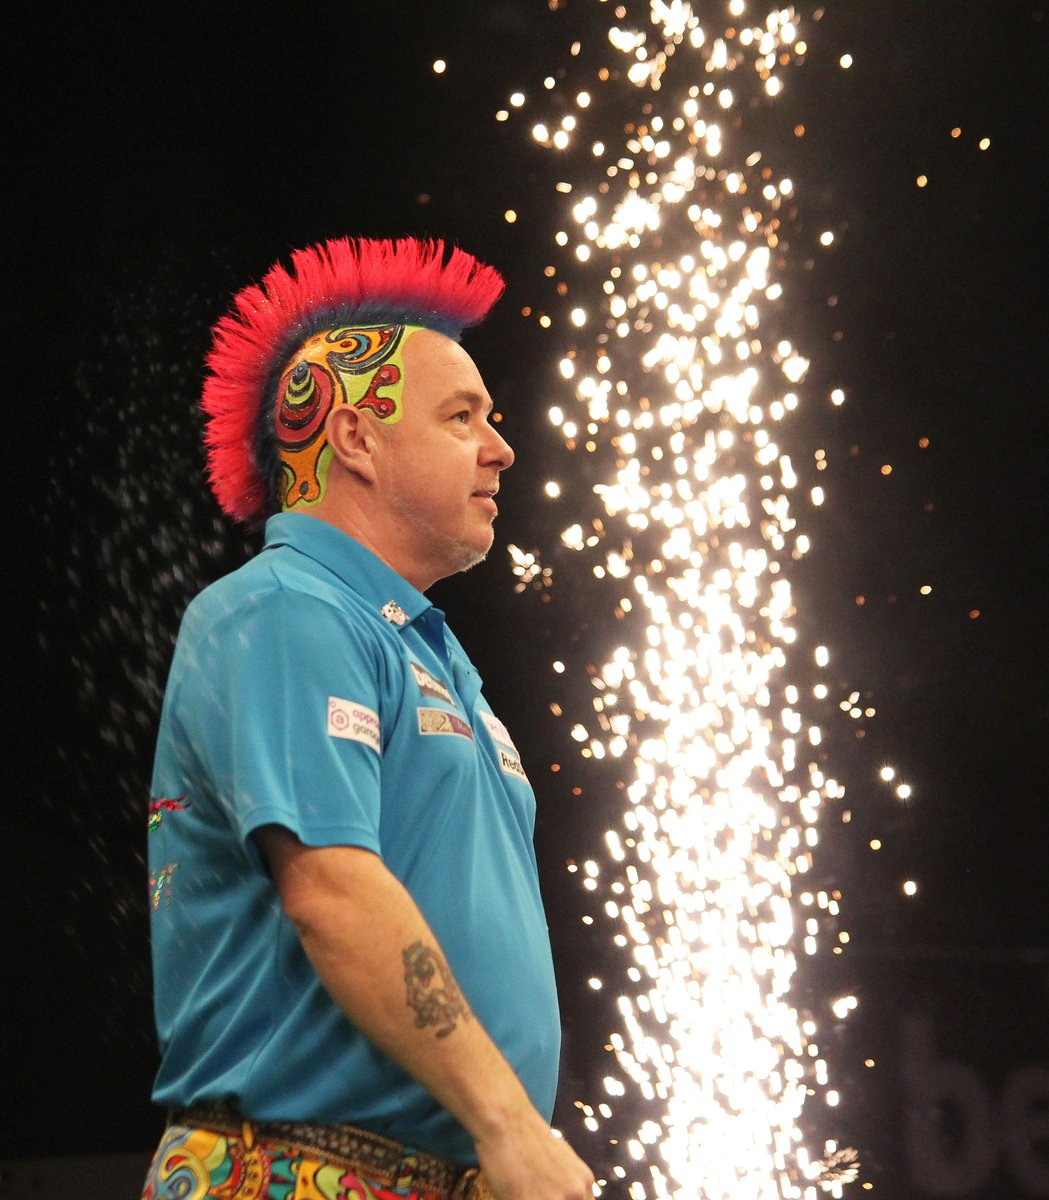 Peter Wright takes on Alan Norris this evening aiming to claim his spot in the next round of #bwin Grand Slam of Darts!      Taylor Lanning  #Snakebite #Dontstoptheparty <br>http://pic.twitter.com/VpAzHEjTSQ